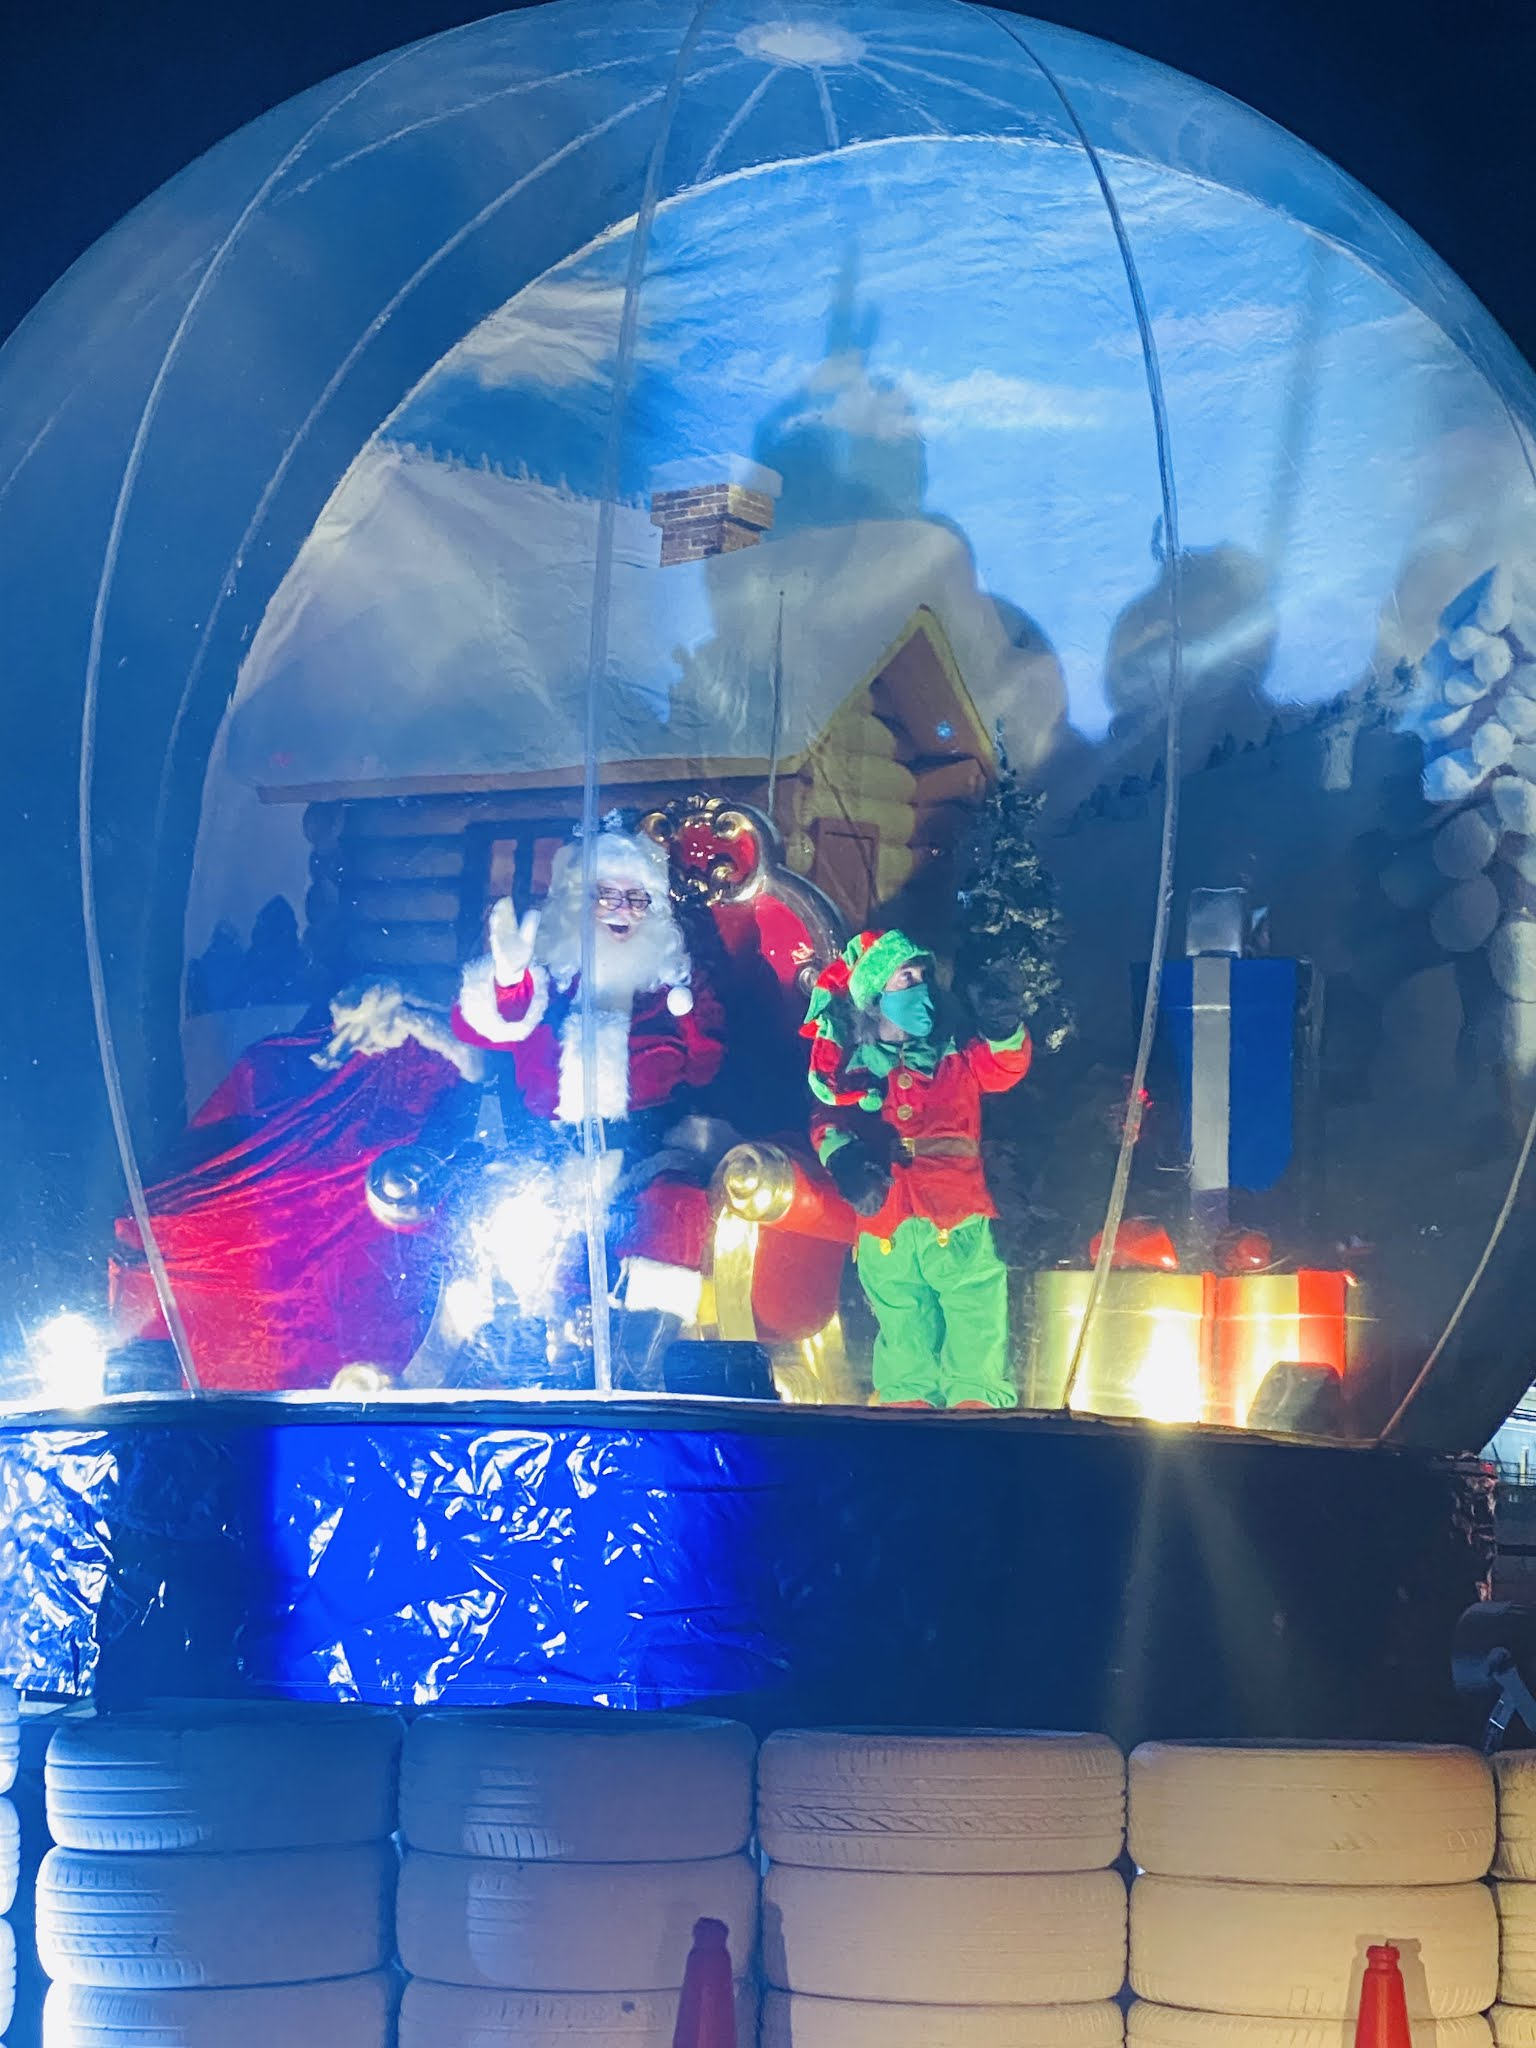 Lap Land Silverstone Review Santa and elf in giant snow globe